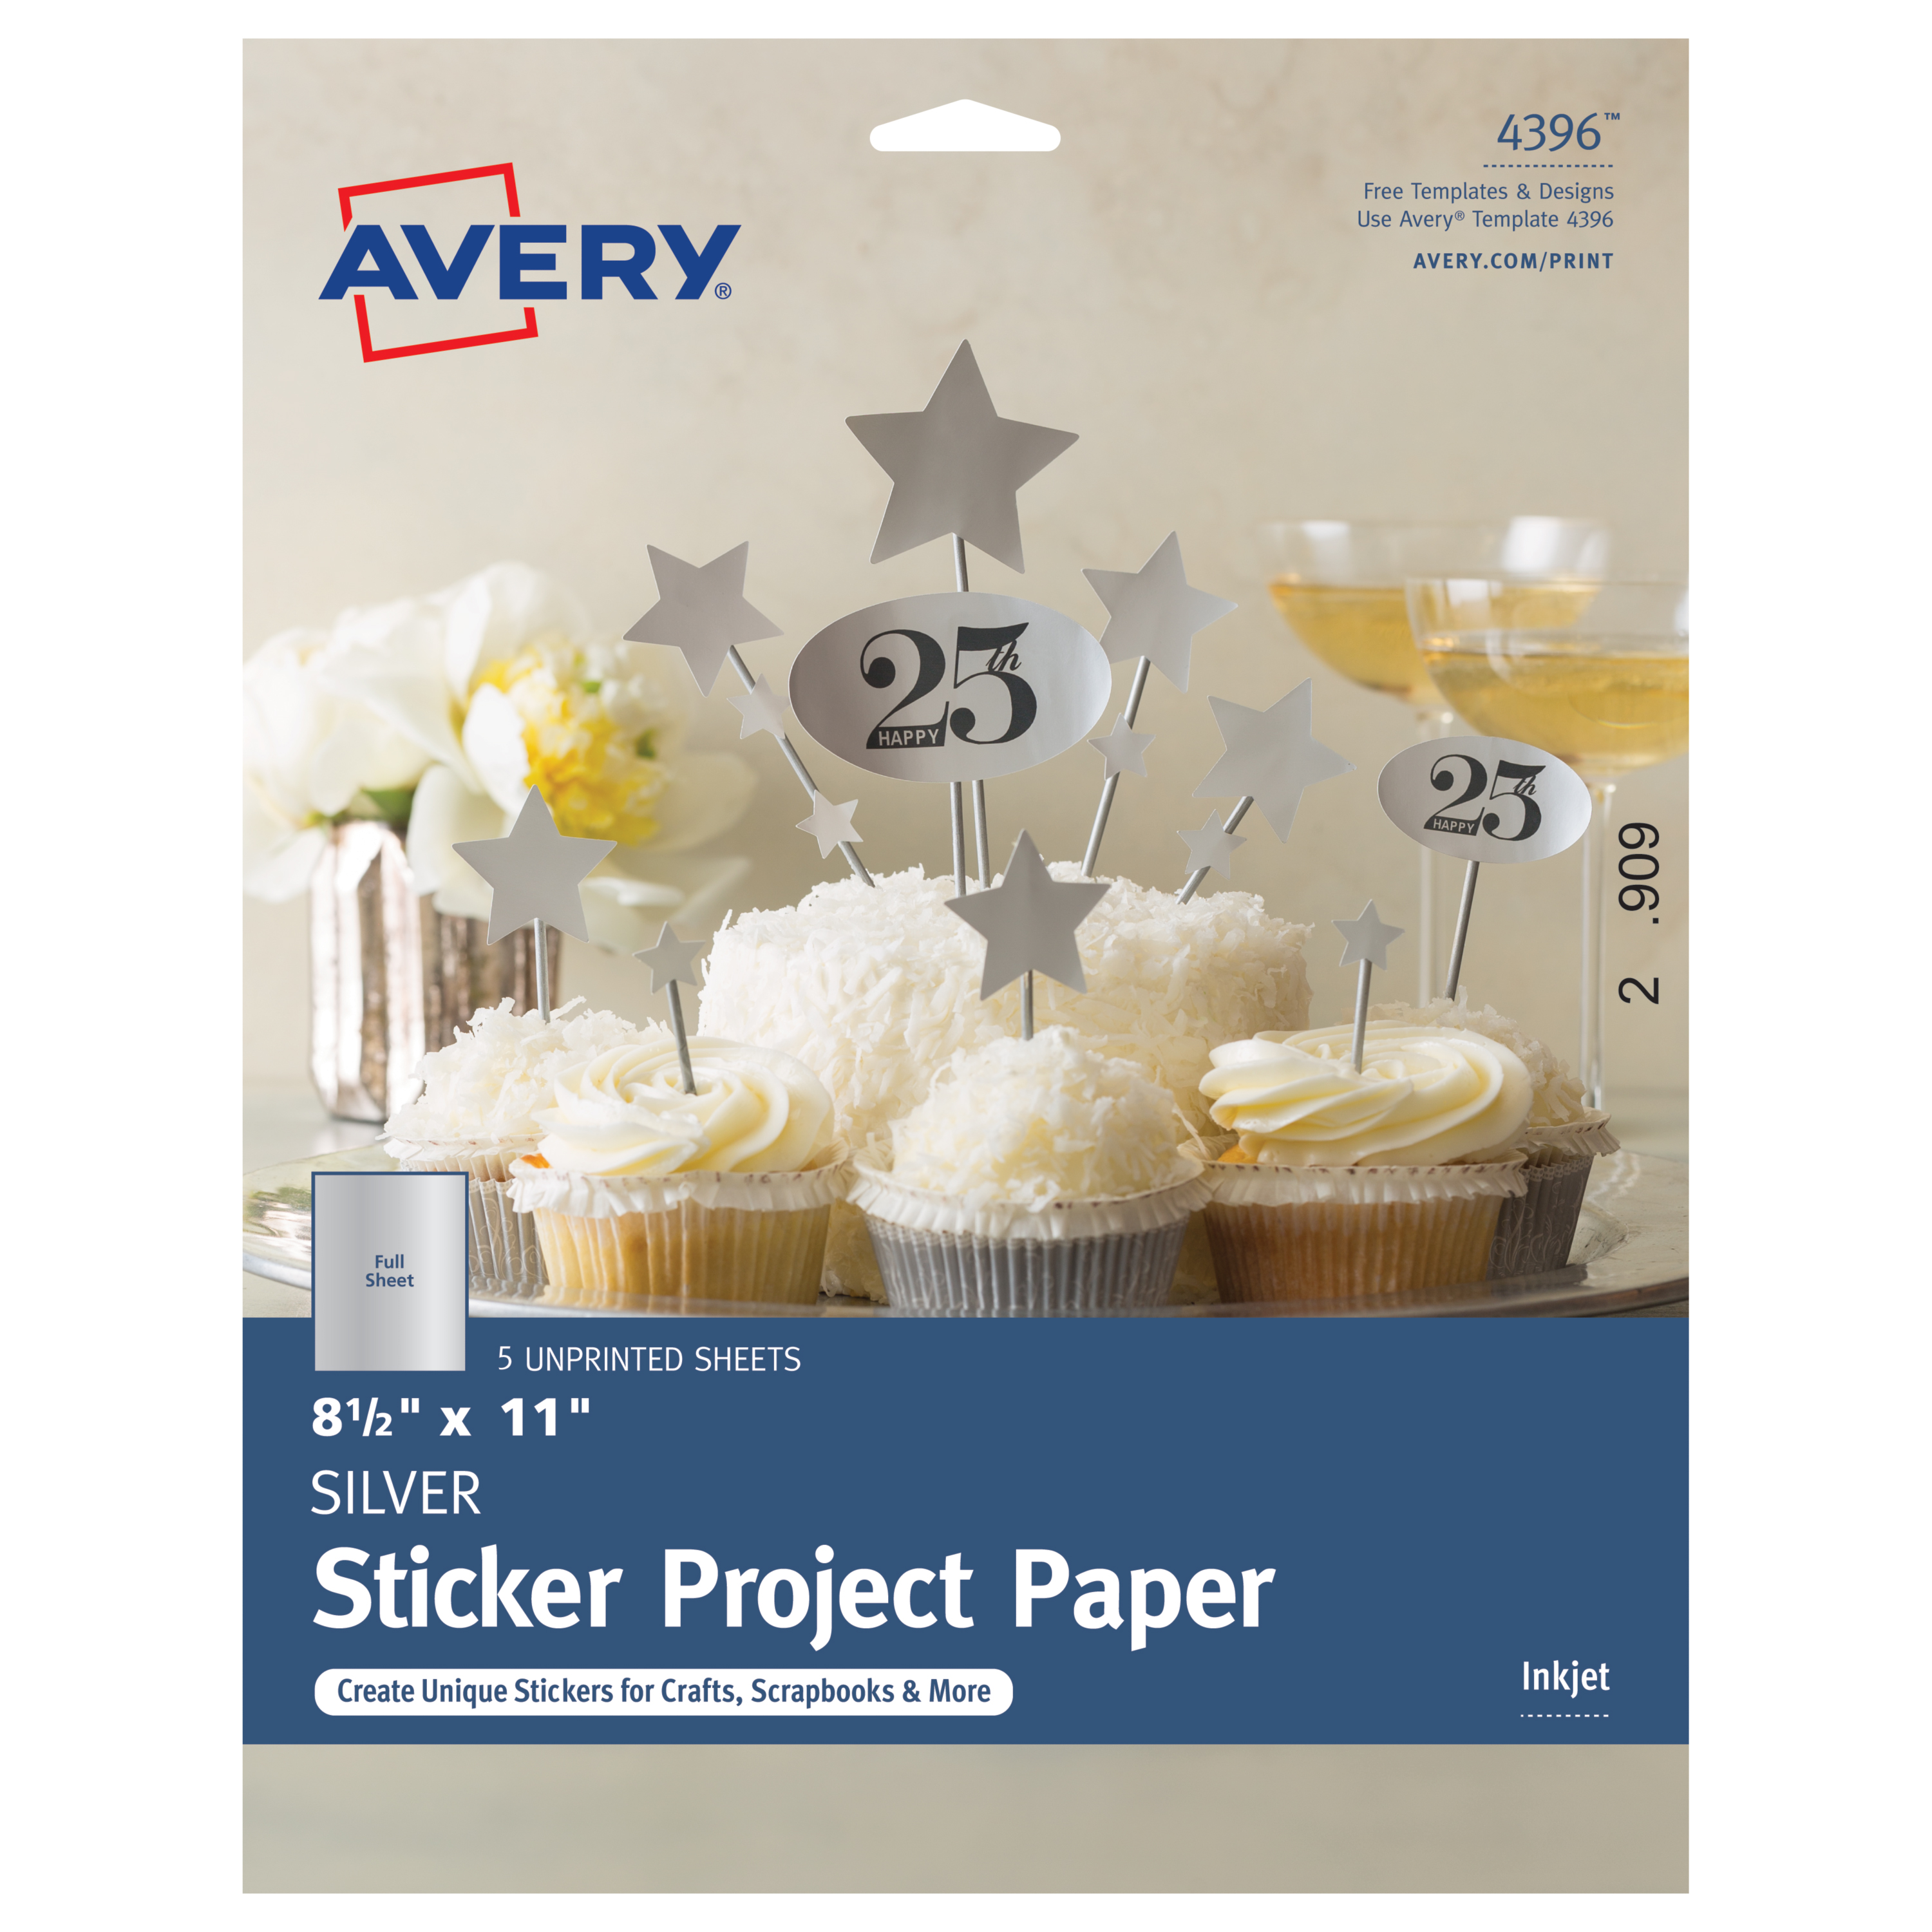 "Avery® Full-Sticker Project Paper, 4396, 8 1/2"" x 11"", Matte, Silver, 5 Sheets"